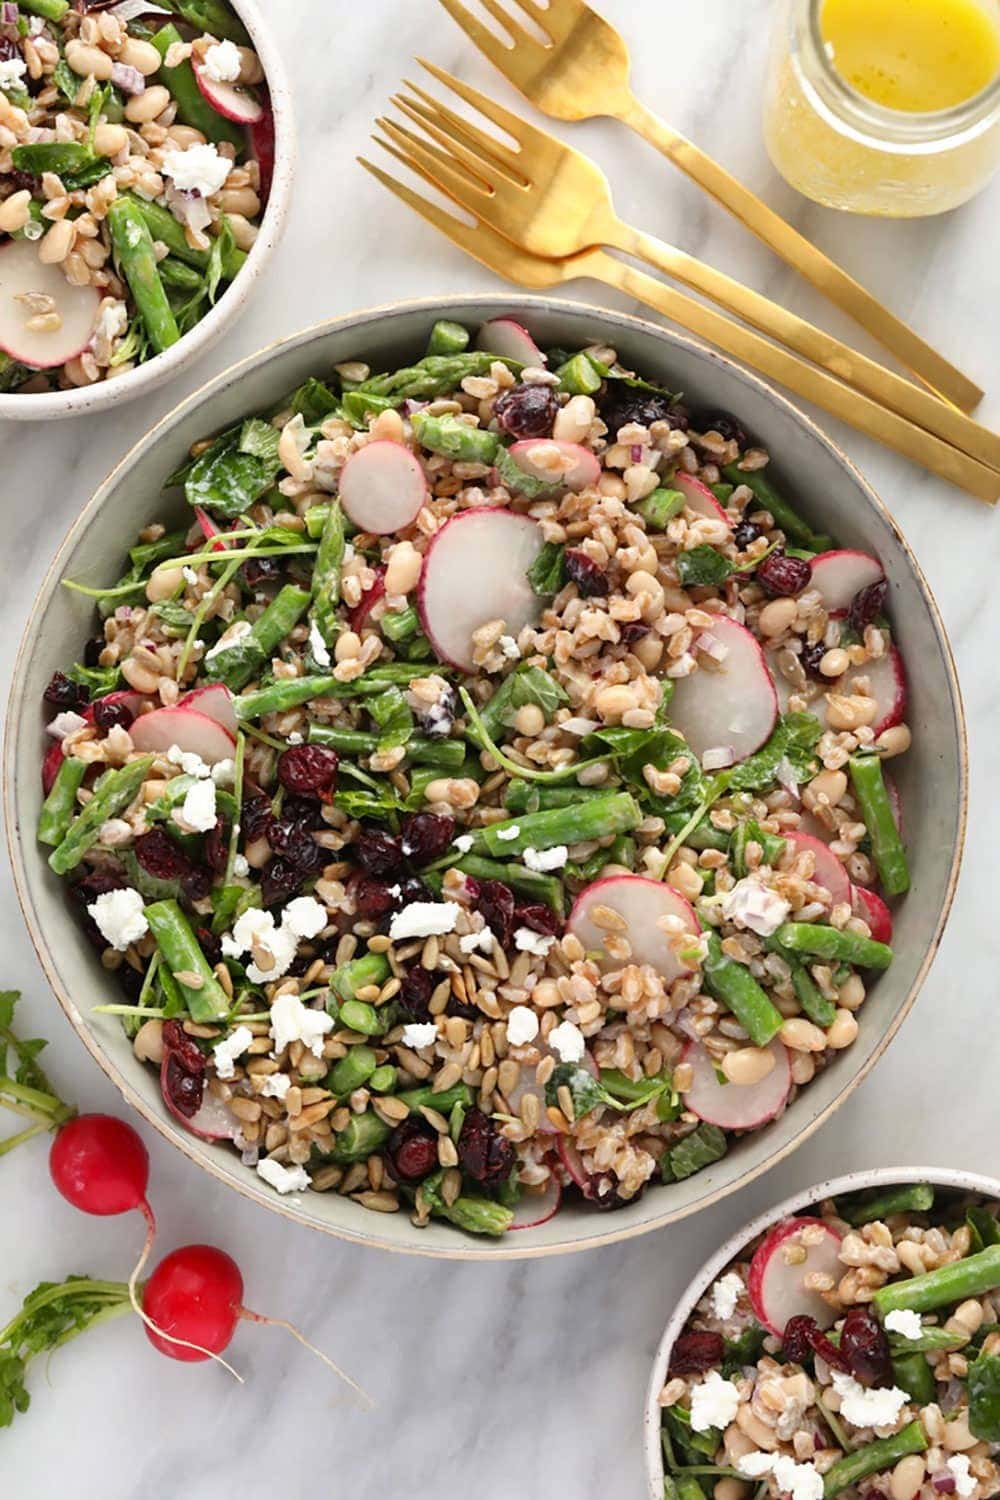 Farro salad in a serving bowl